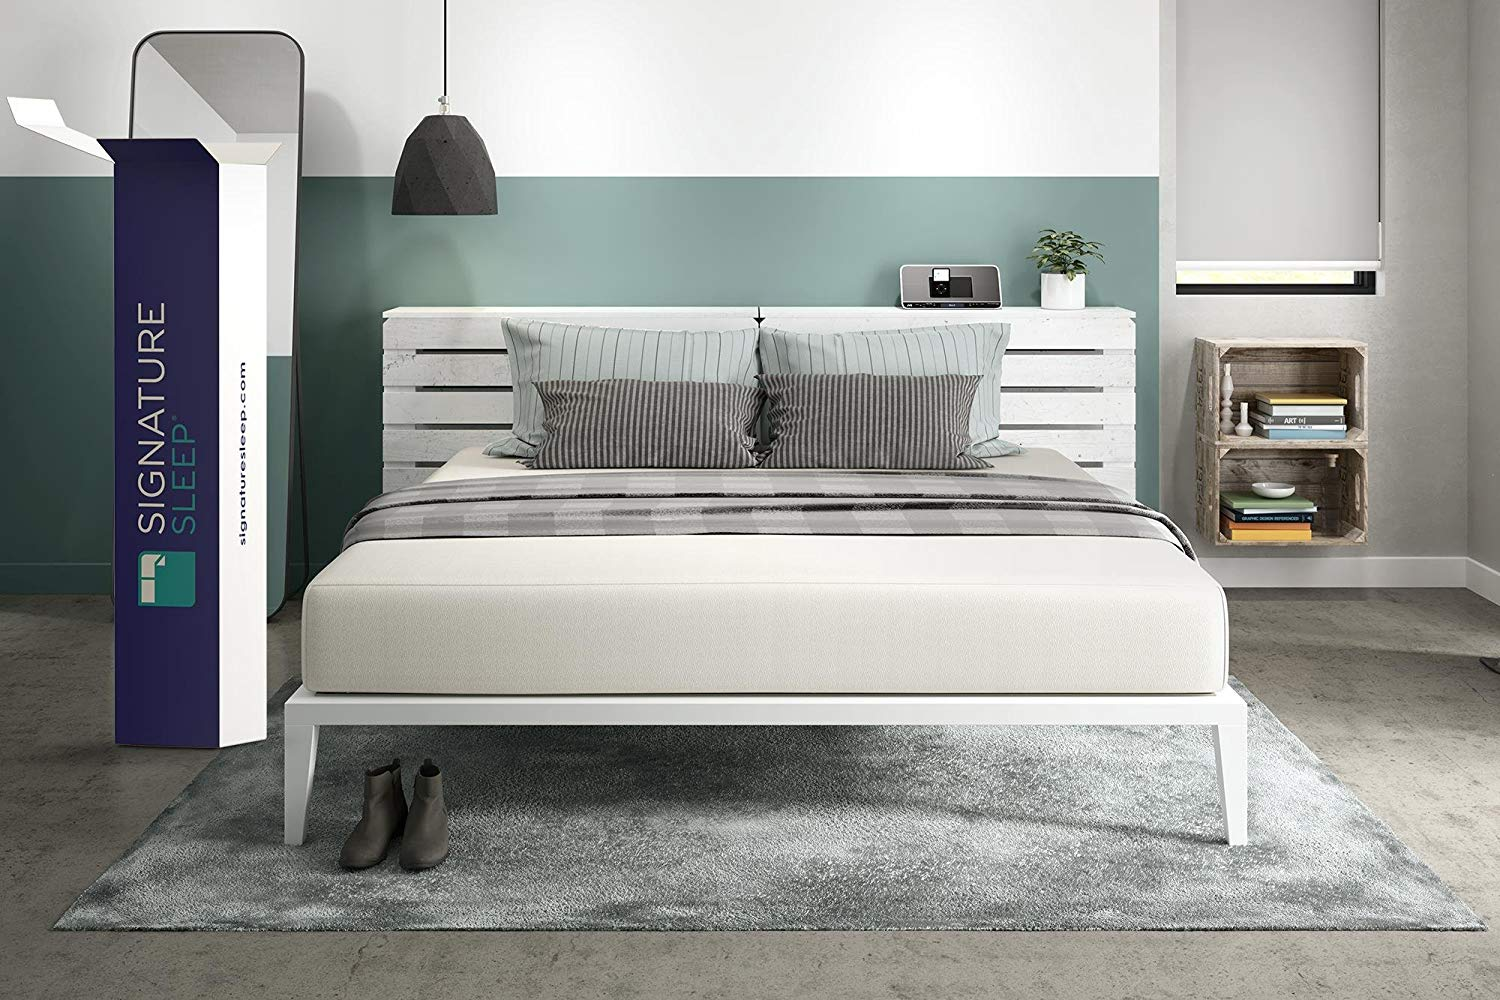 Top 10 Best Mattress Of 2020 – Reviews, Price & Buying Guide